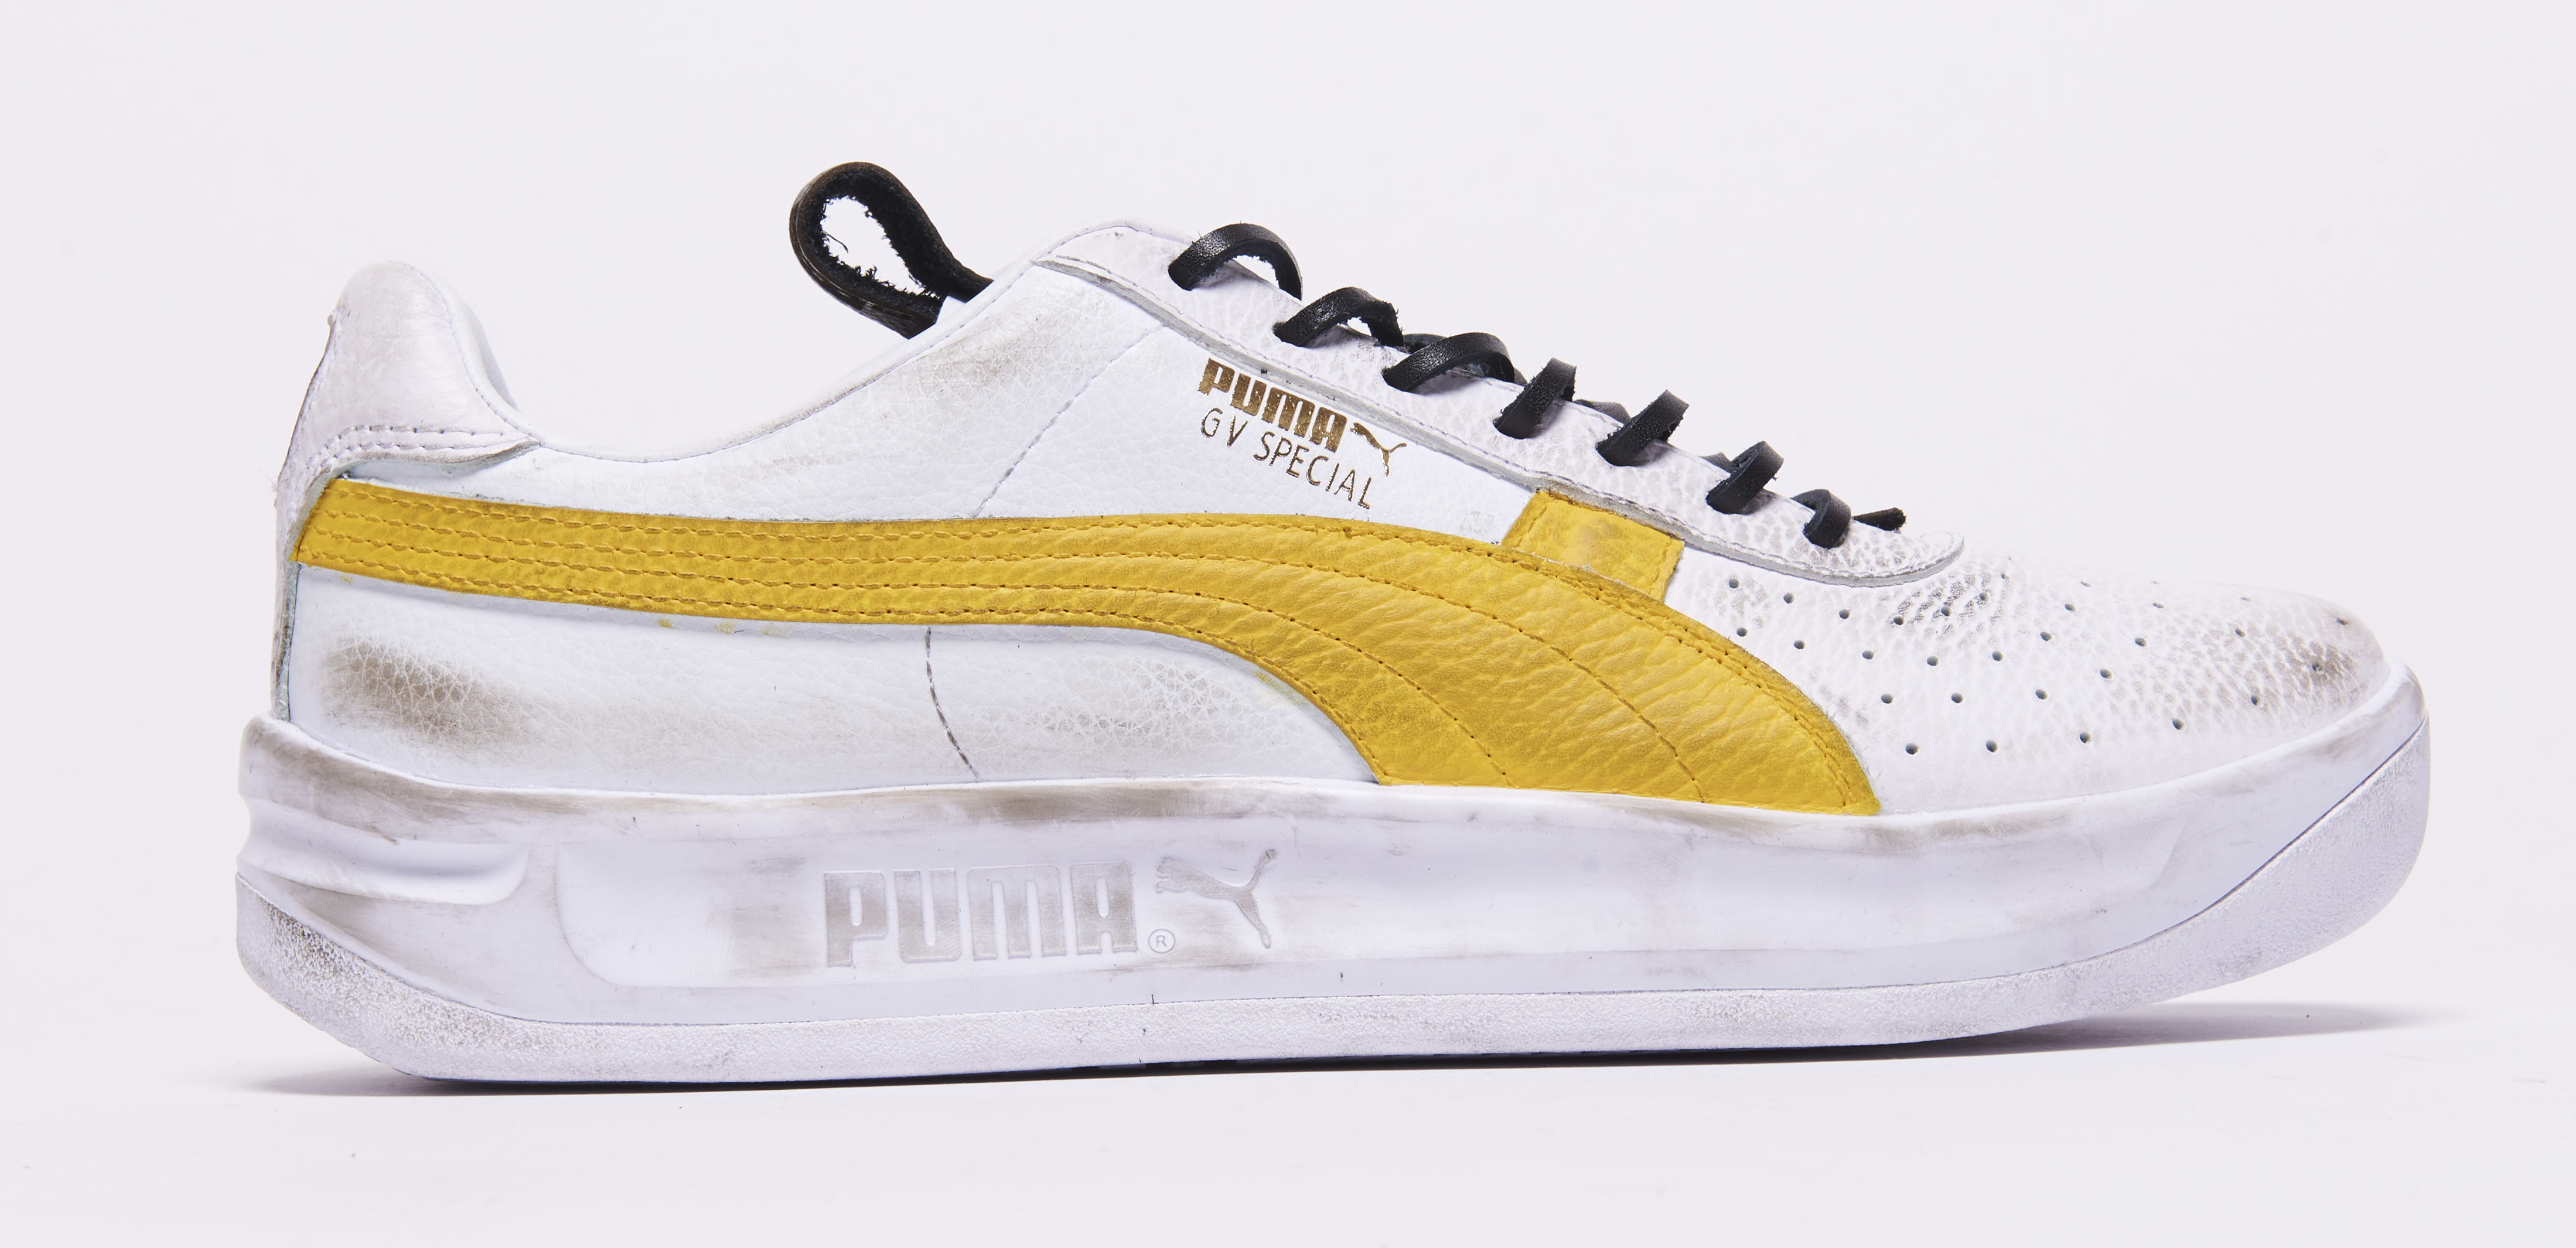 'The Walking Dead' x Puma GV Special (Lateral)